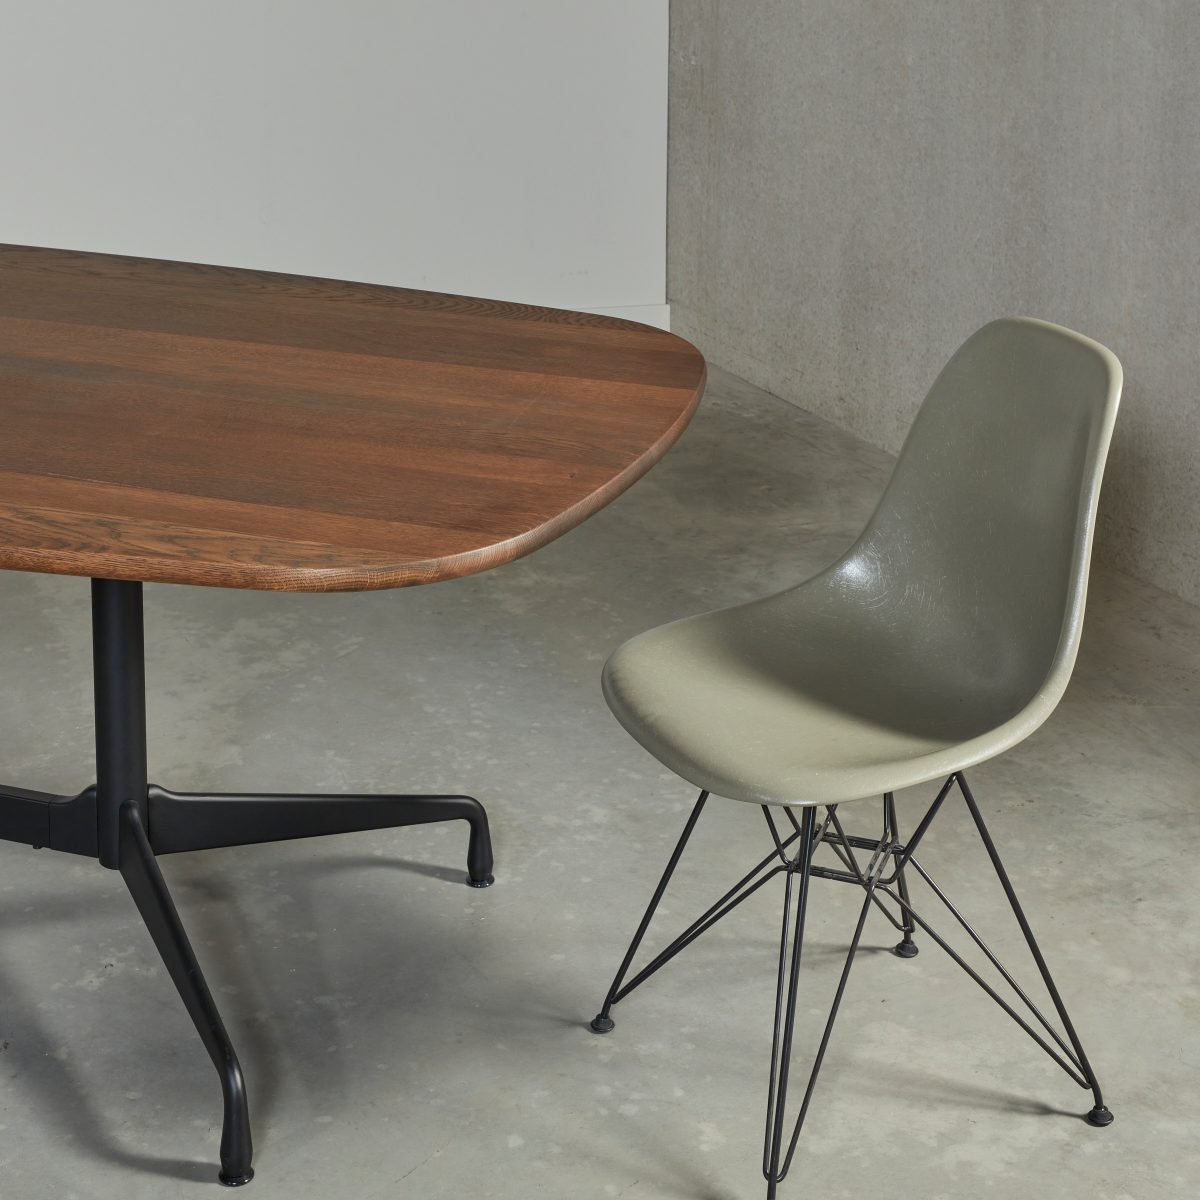 Eames segmented table